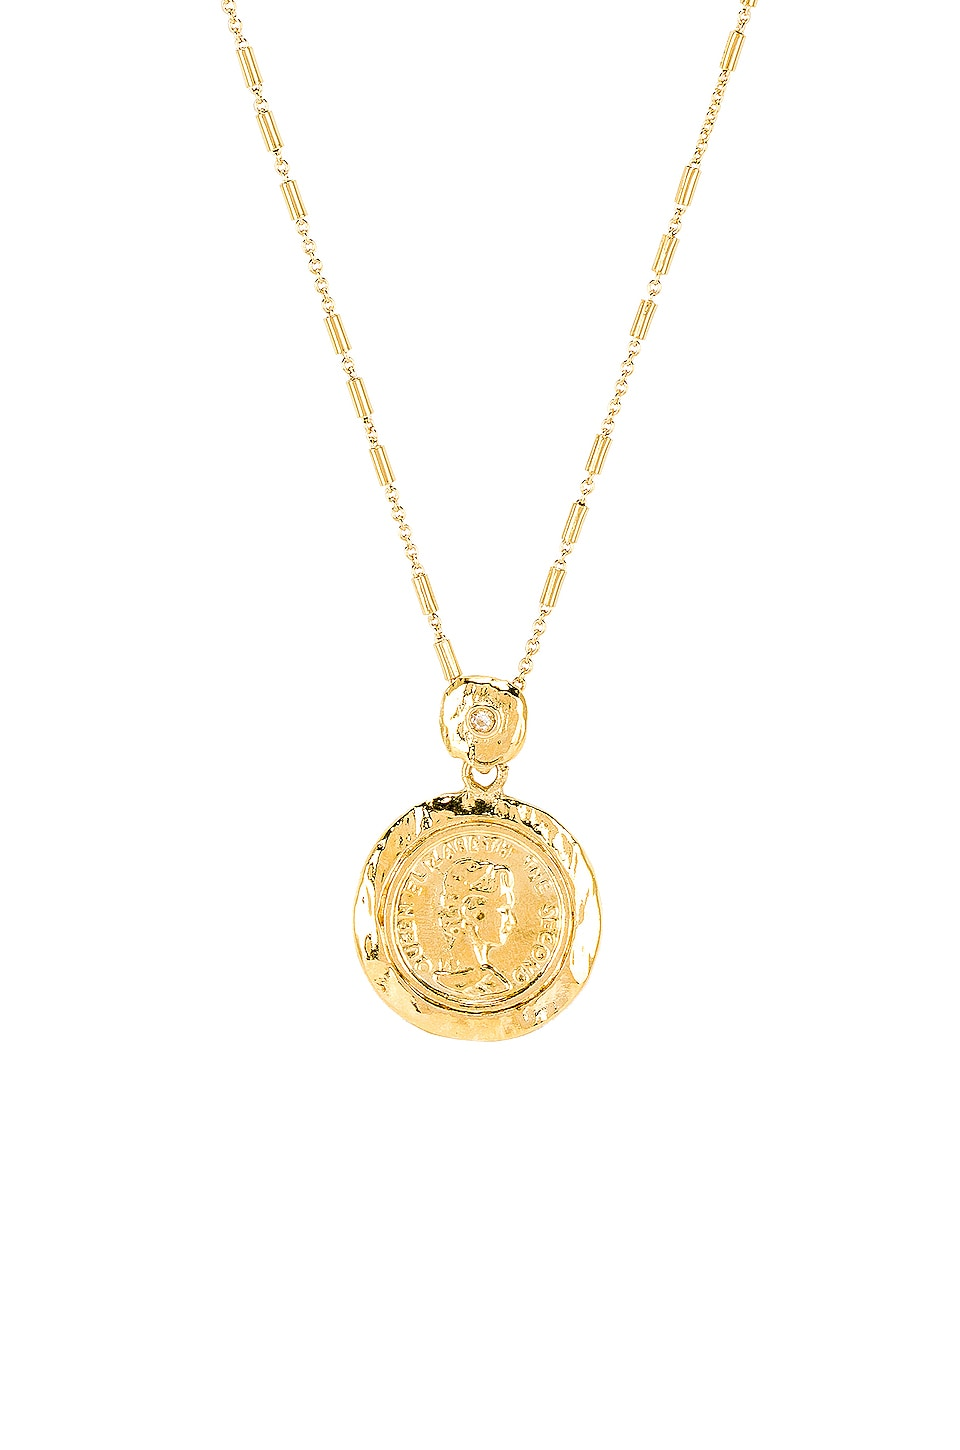 joolz by Martha Calvo Tesori Coin Necklace in Gold